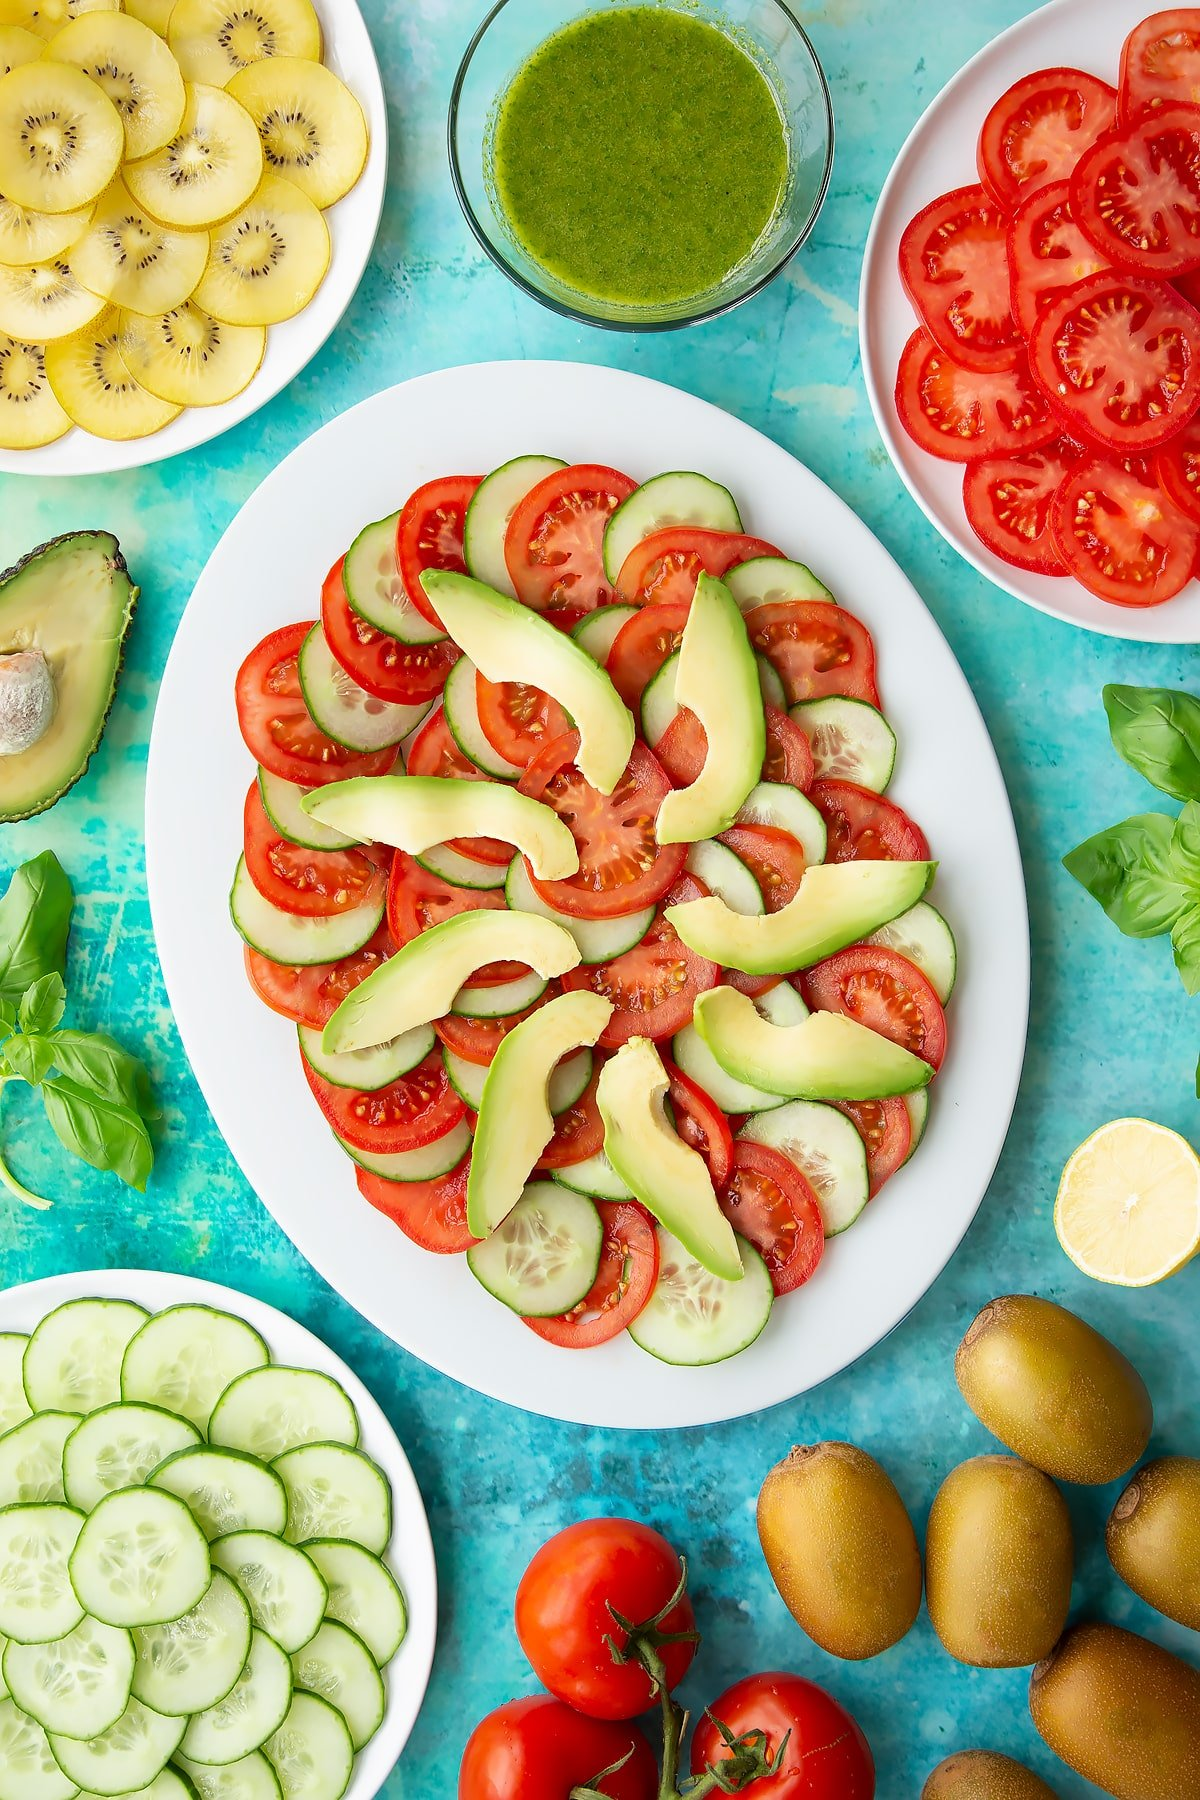 Sliced tomatoes, cucumber and avocado on a white oval plate. Ingredients to make a kiwi feta salad surround the platter.